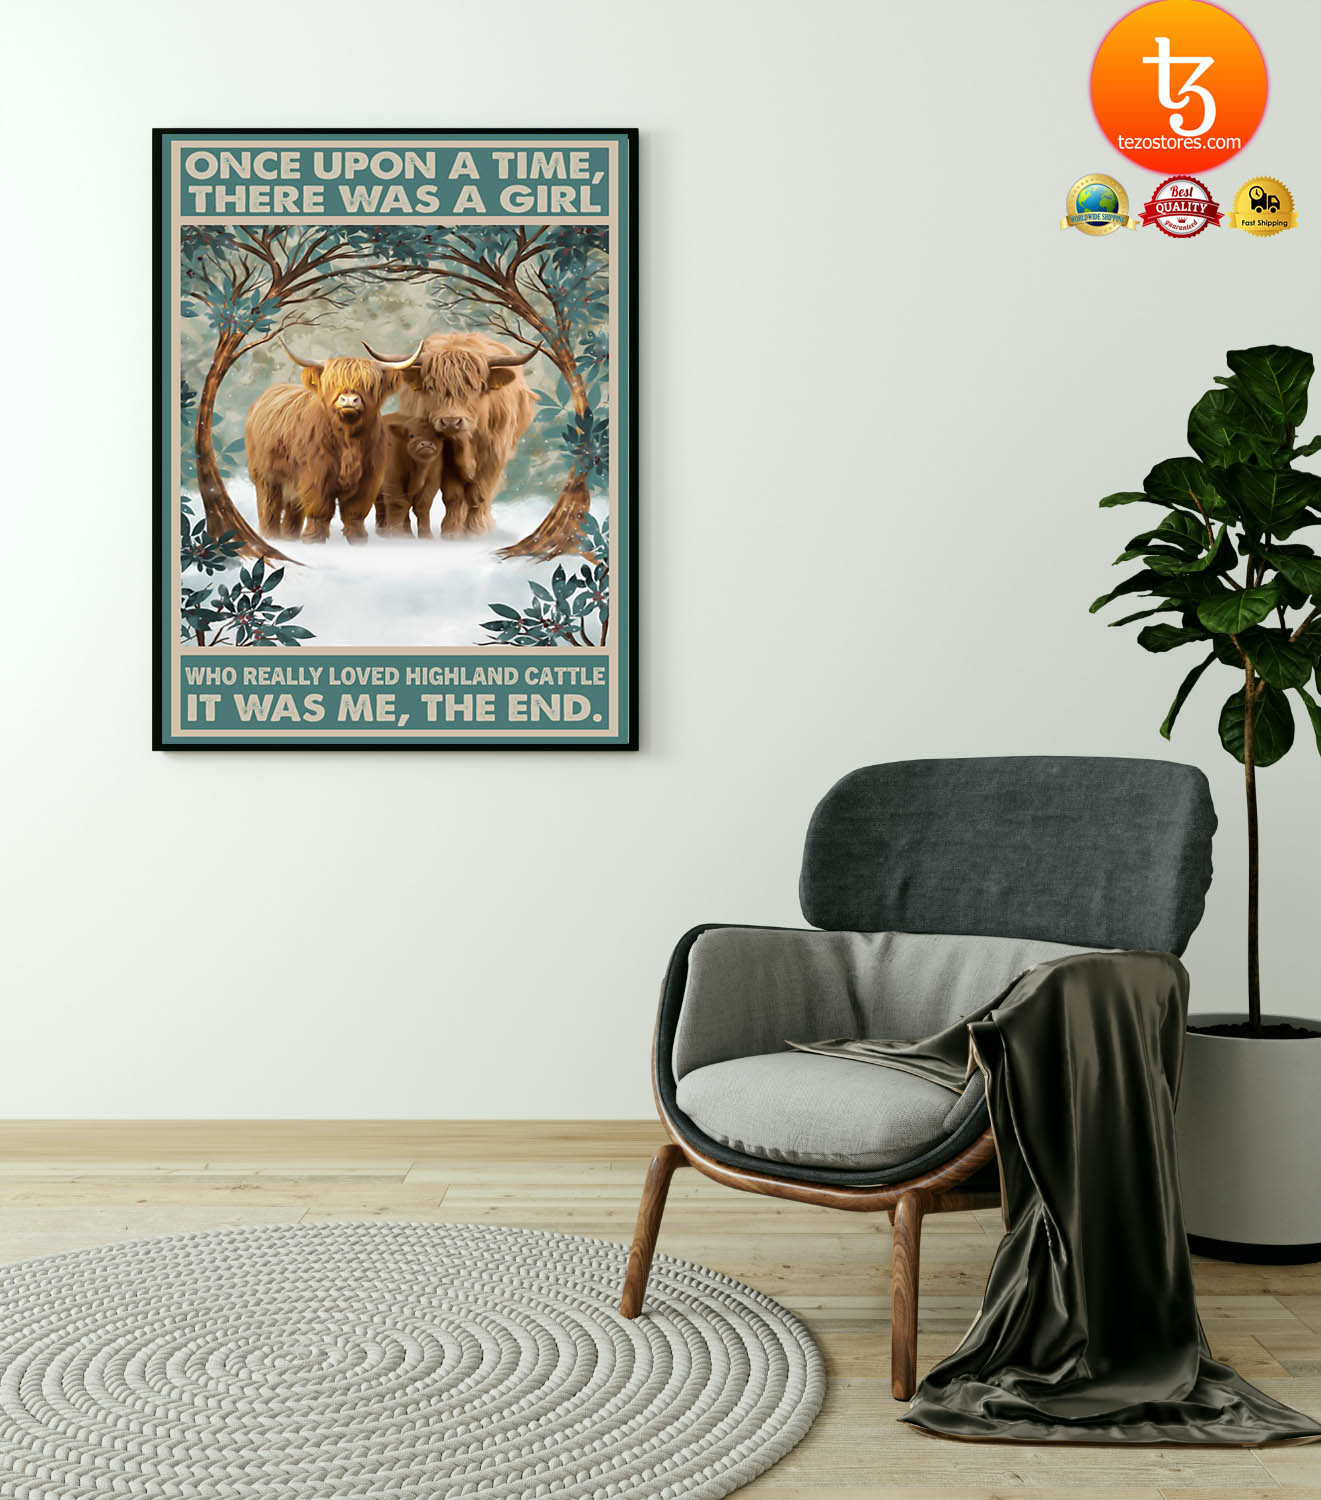 Once upon a time there was a girl who really loved hinghland cattle poster